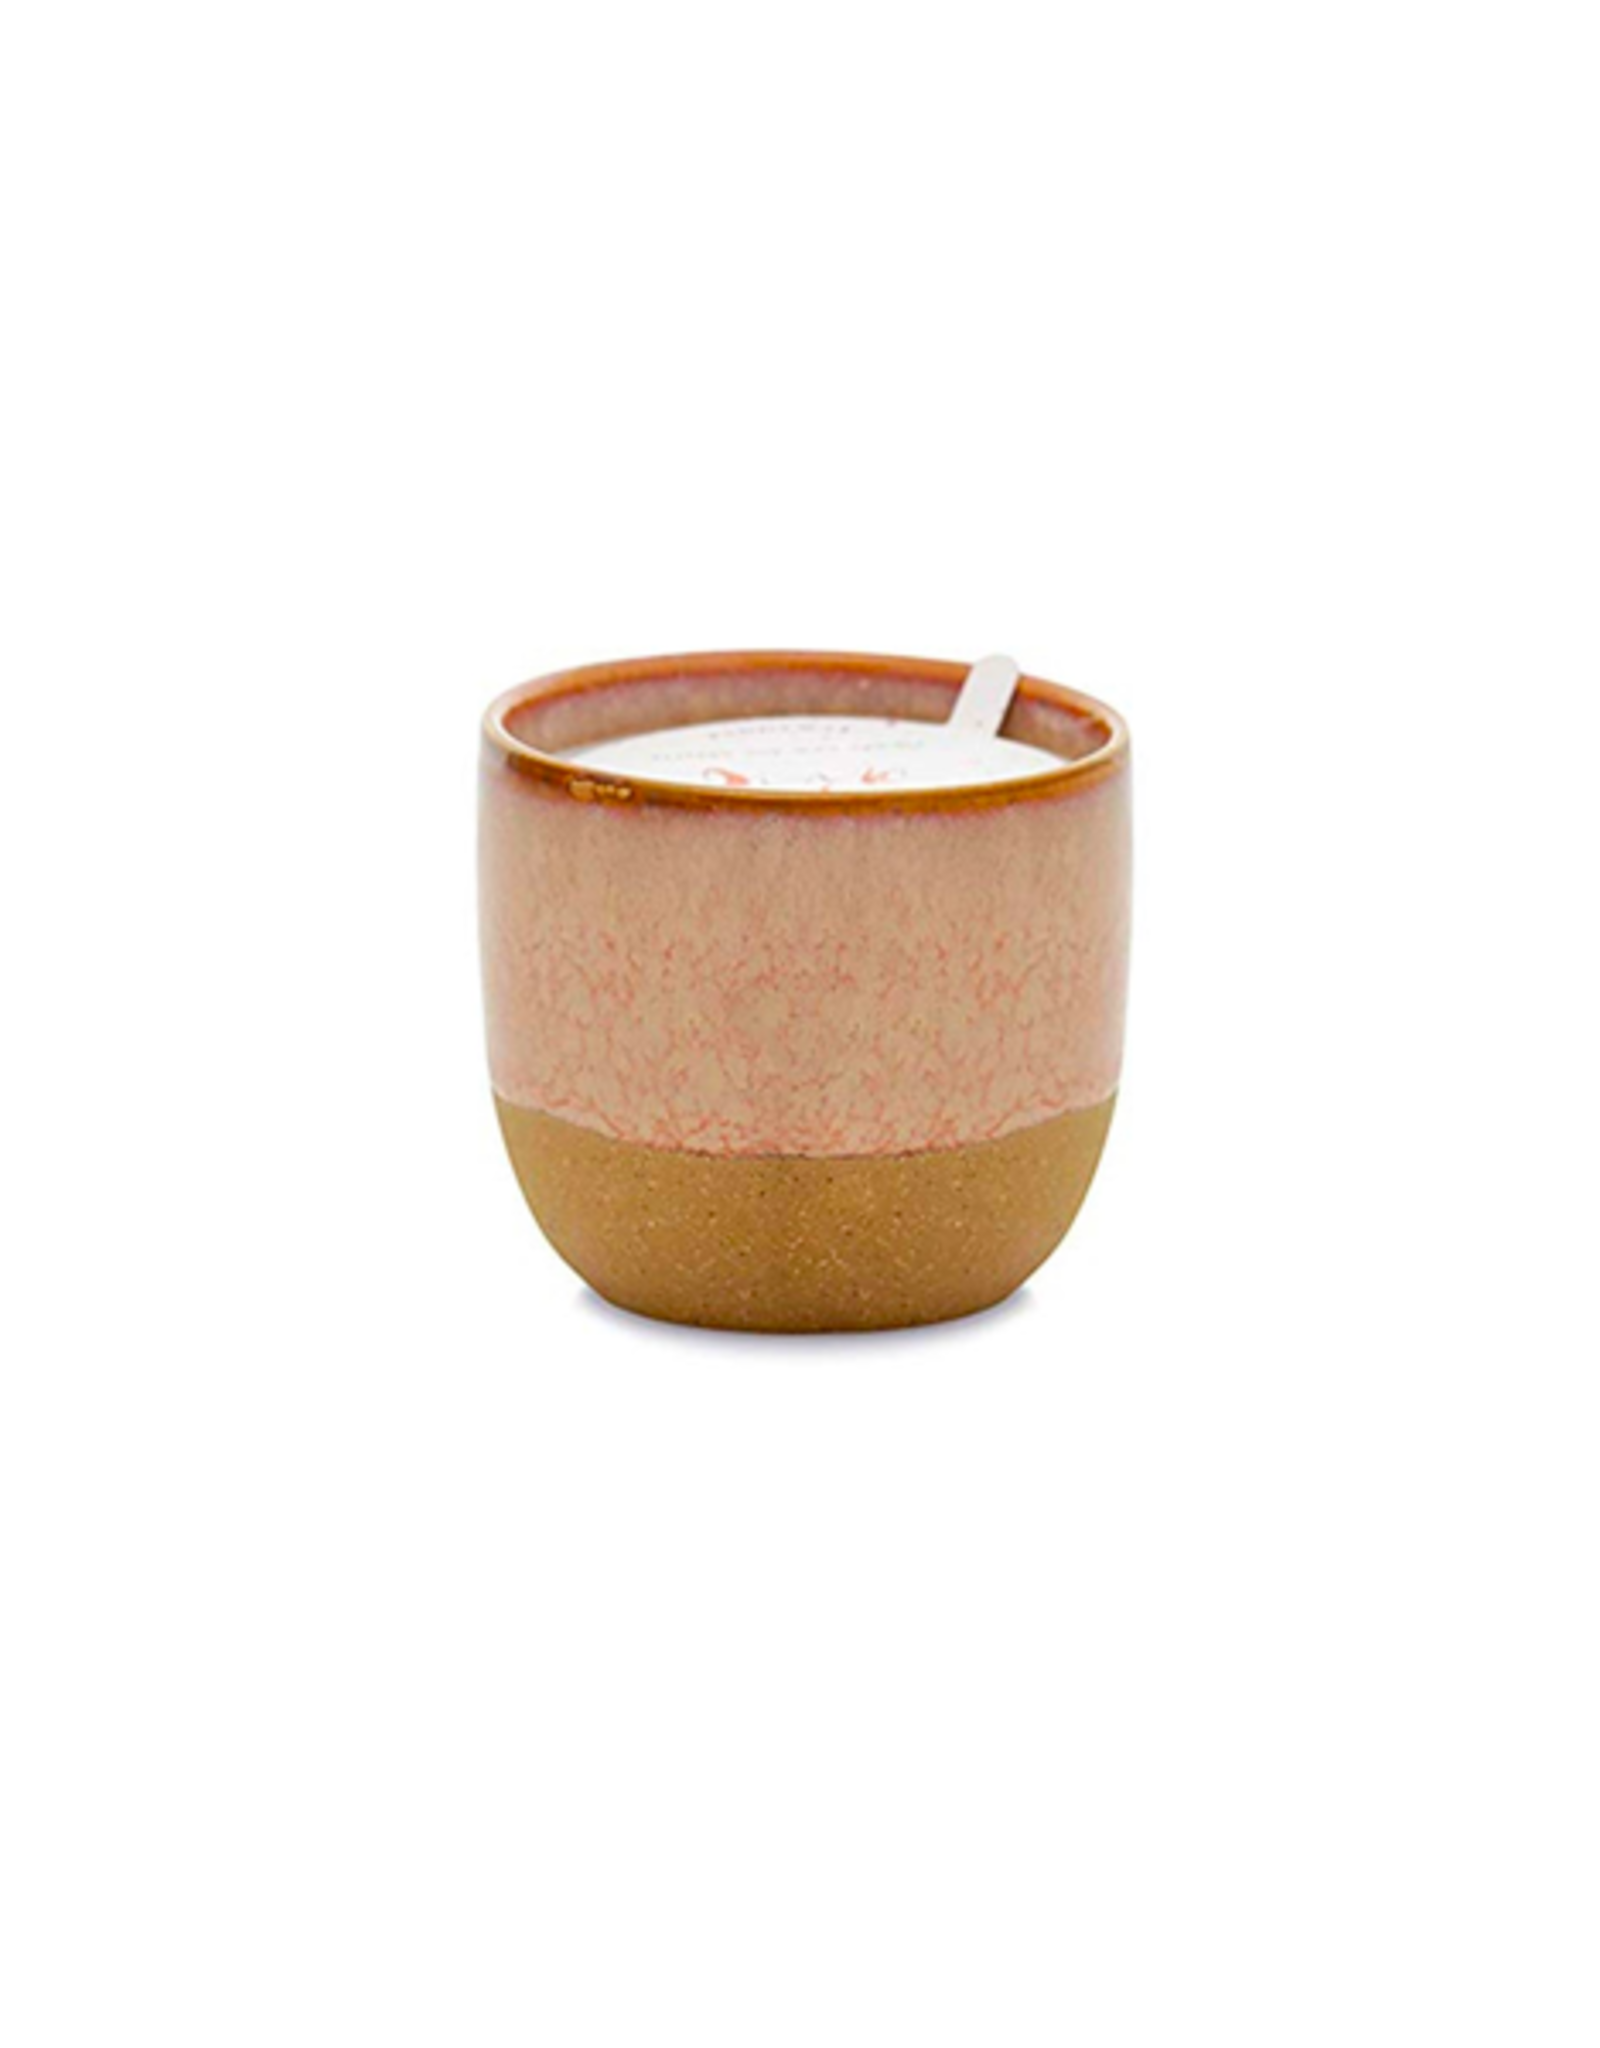 PAX - Soy Candle/Pink Opal & Persimmon, Rust Glaze, 6oz